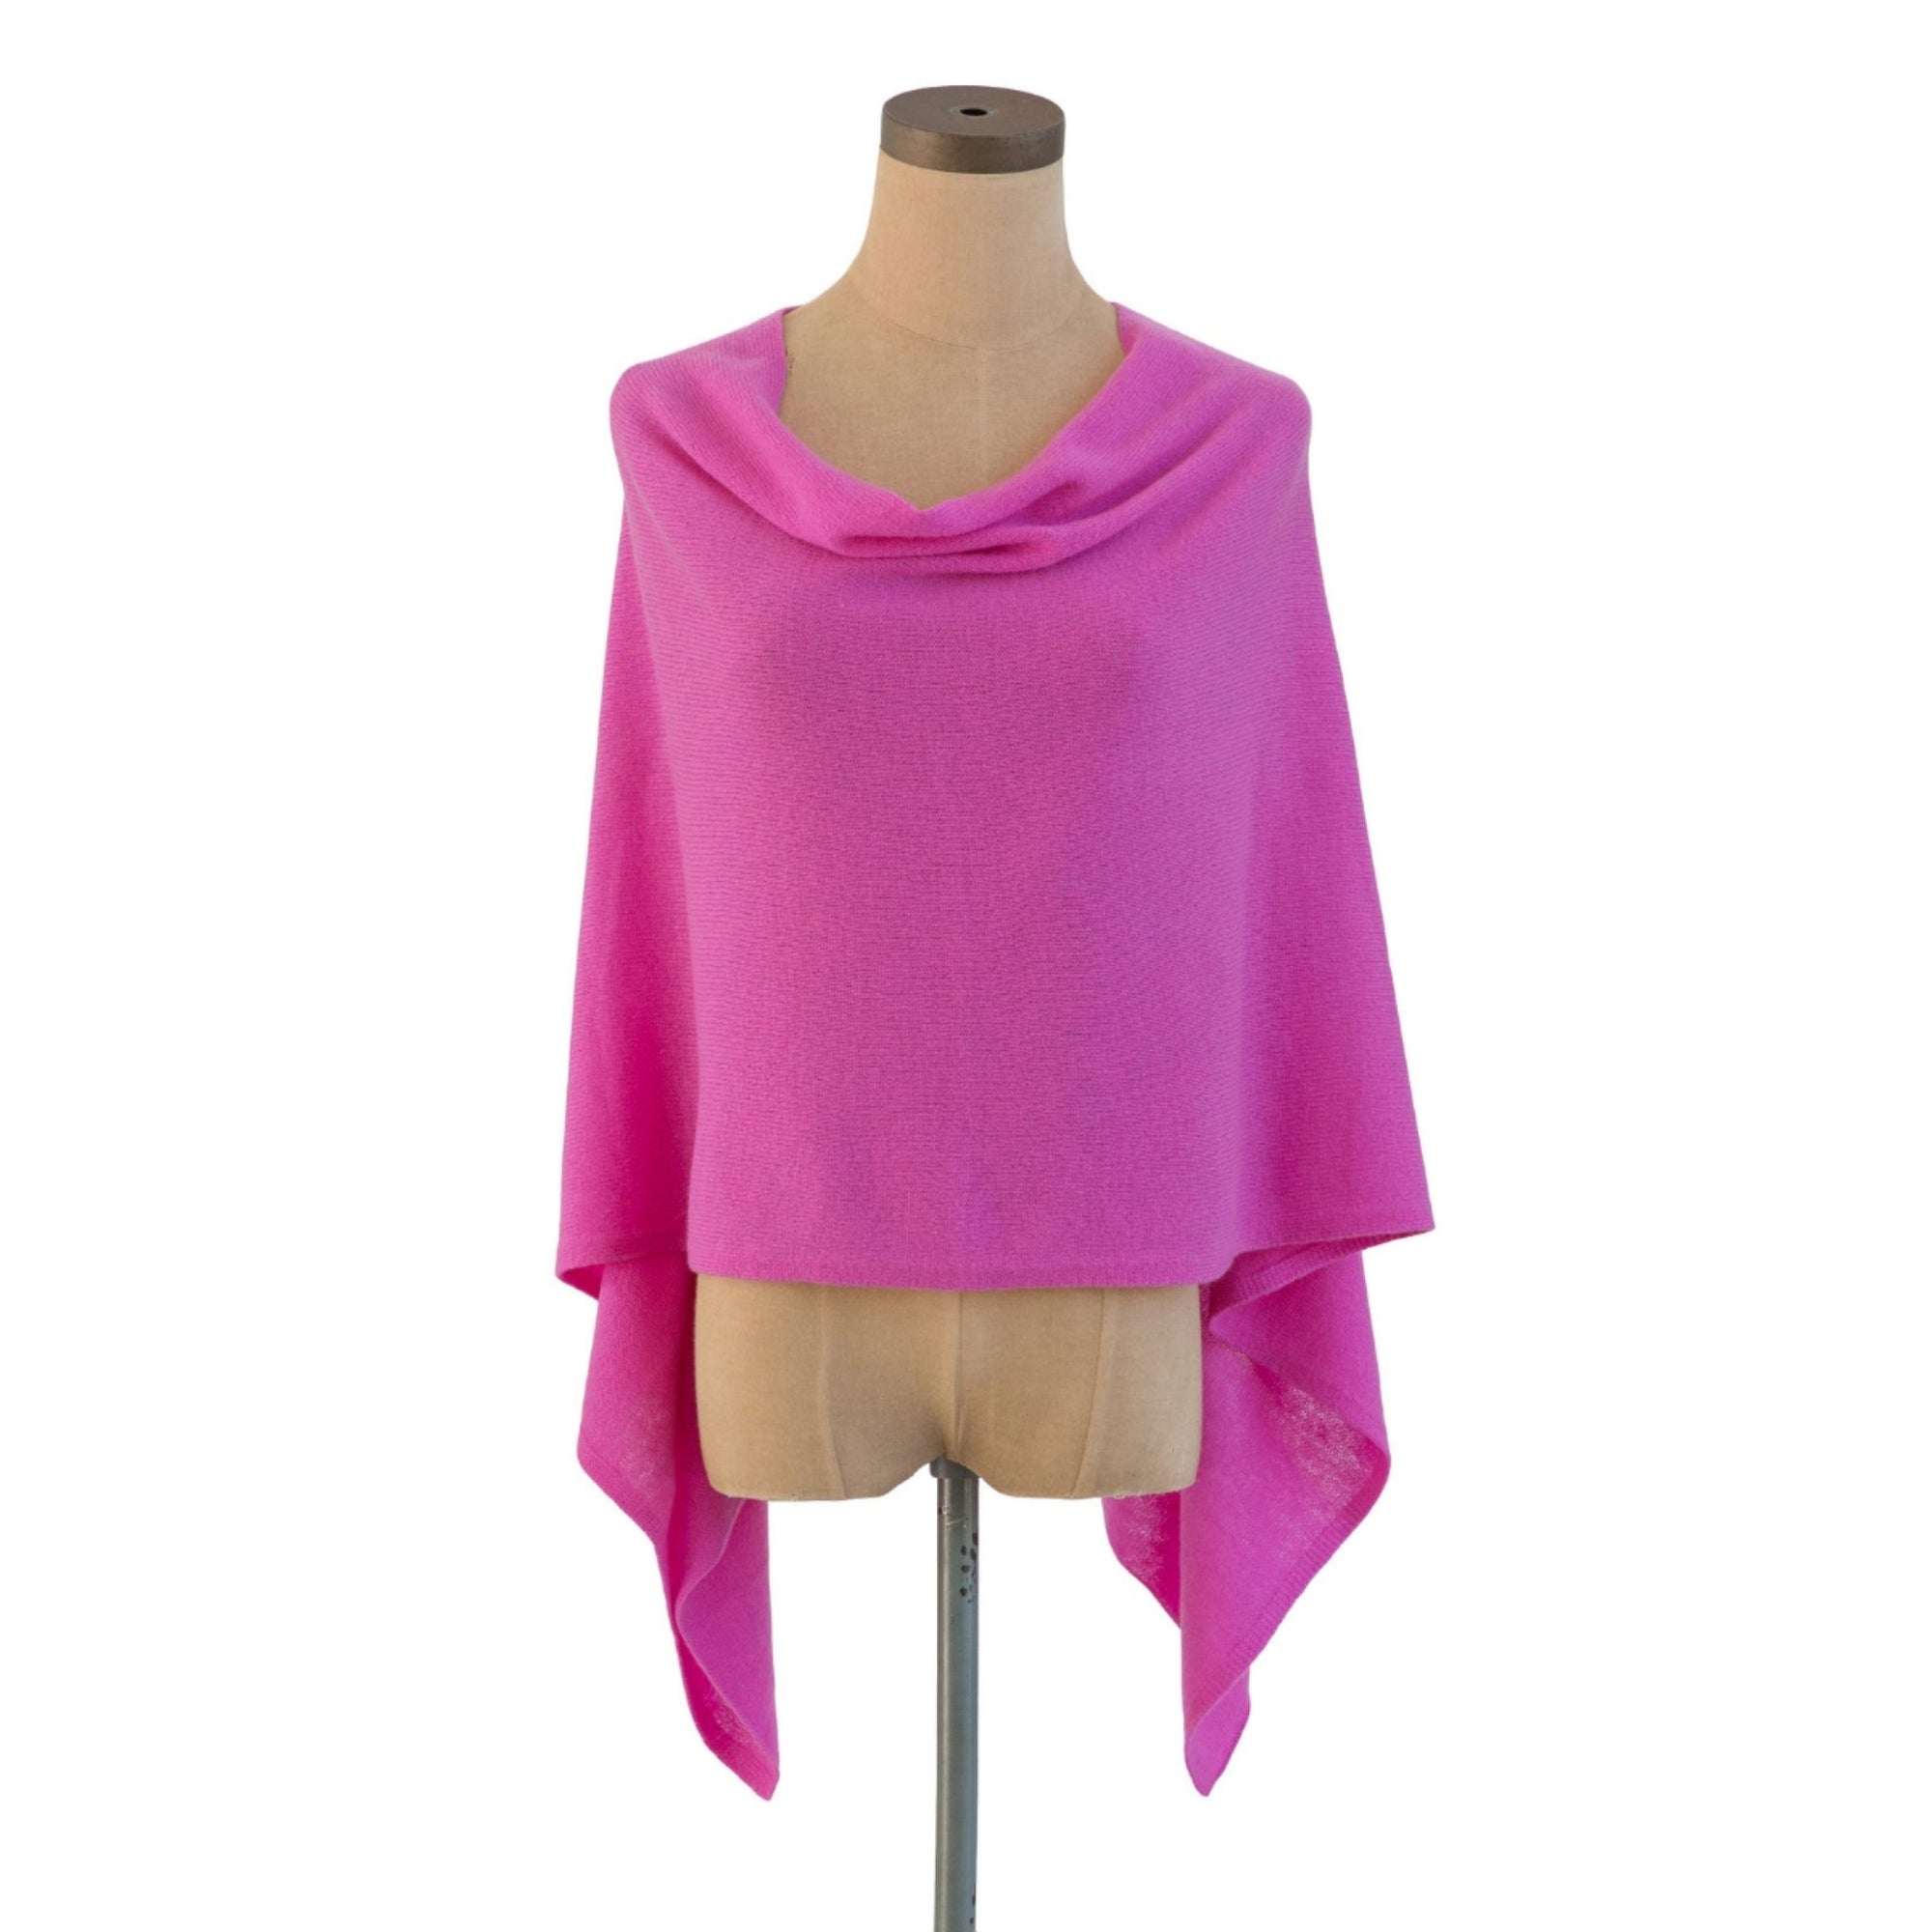 Orchid Cashmere Dress Topper